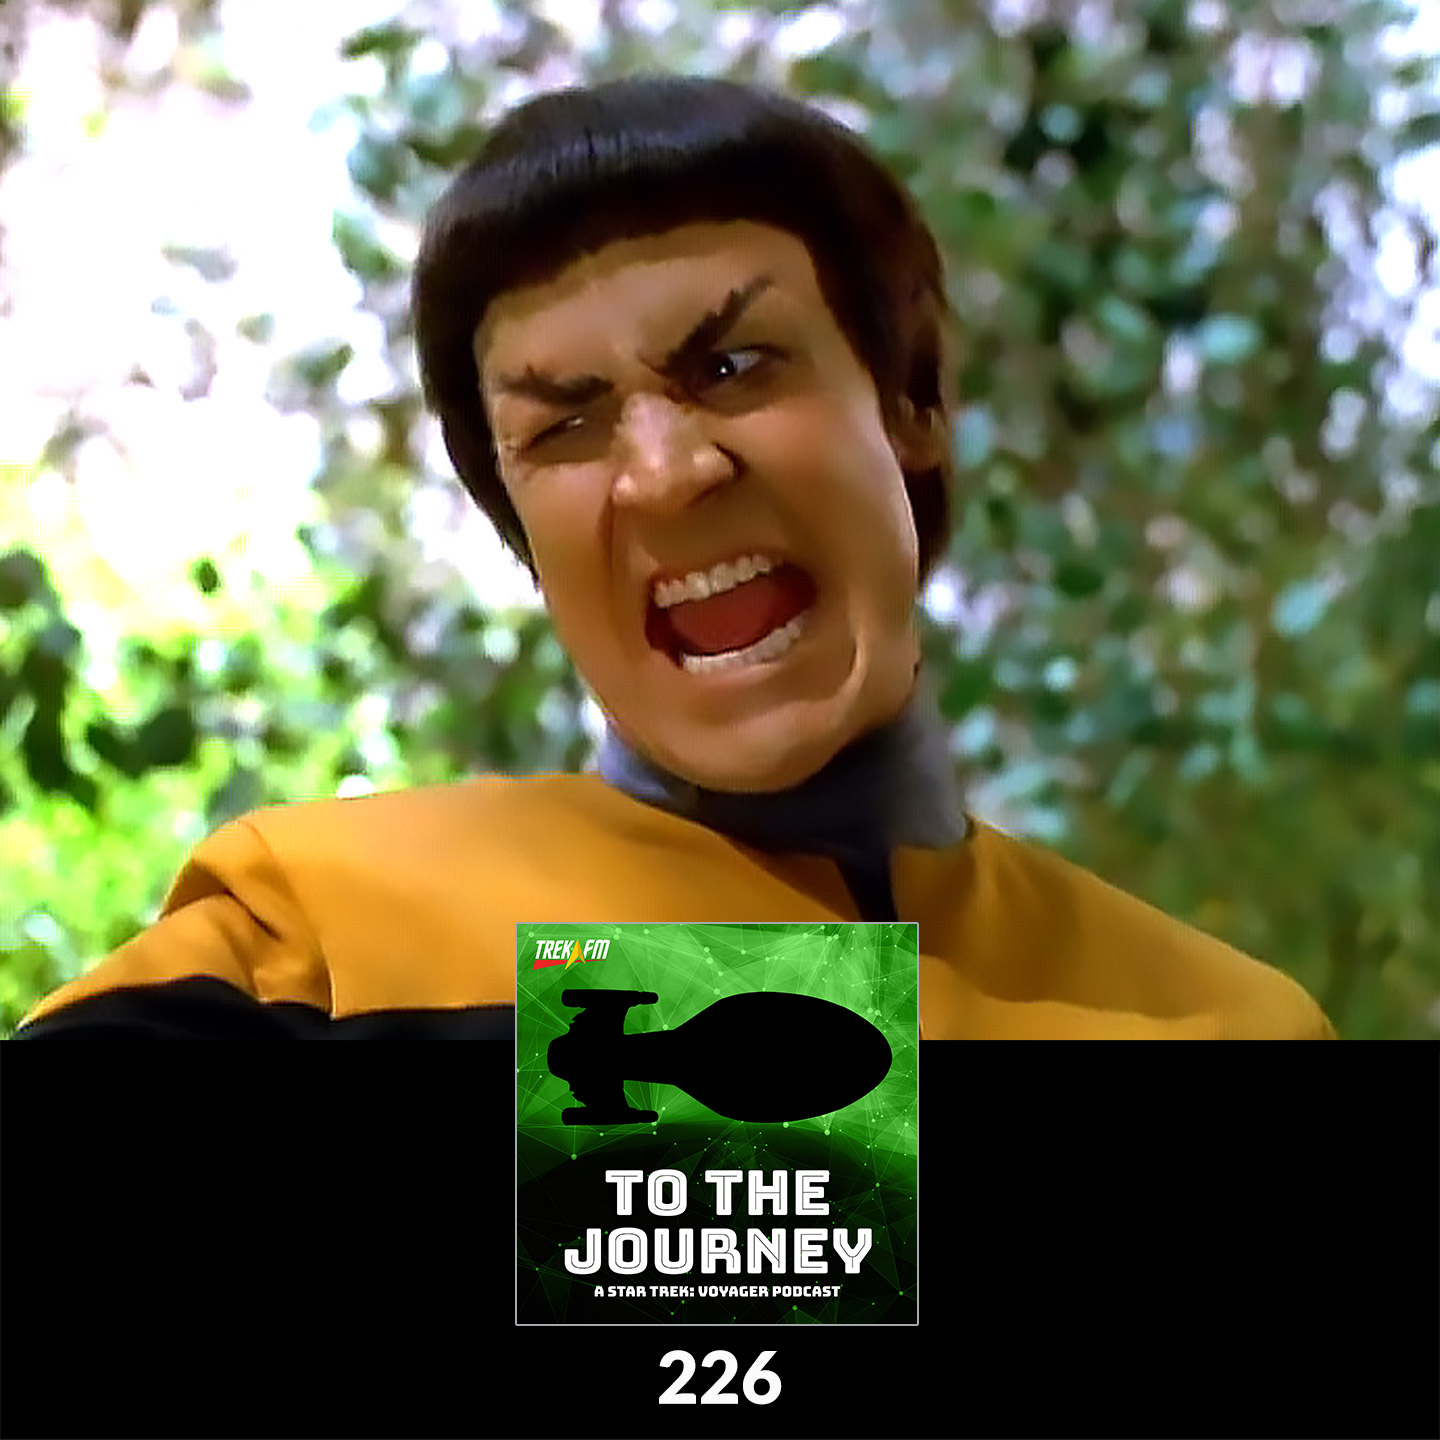 To The Journey 226: No Seven-Year Mission - Vorik Character Analysis.